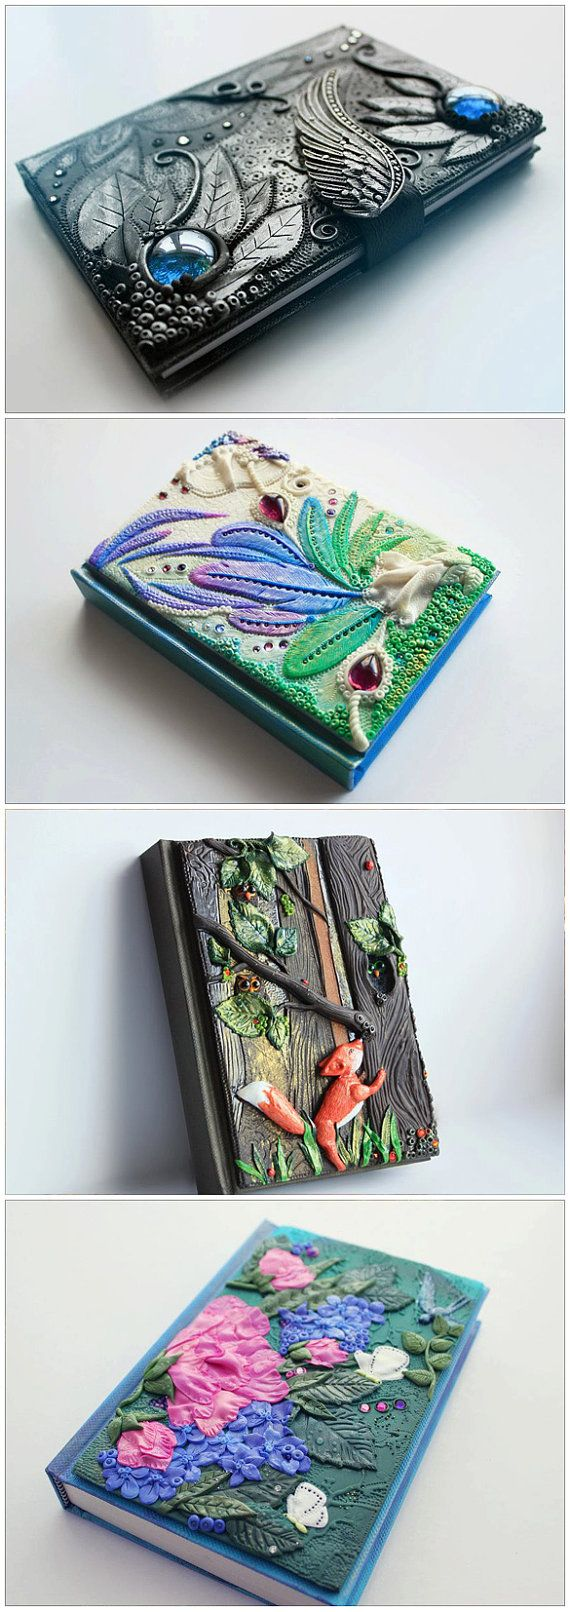 Polymer clay hand sculpted journal covers by amandarinduck. Glass drop cabochons and Swarovski crystals.